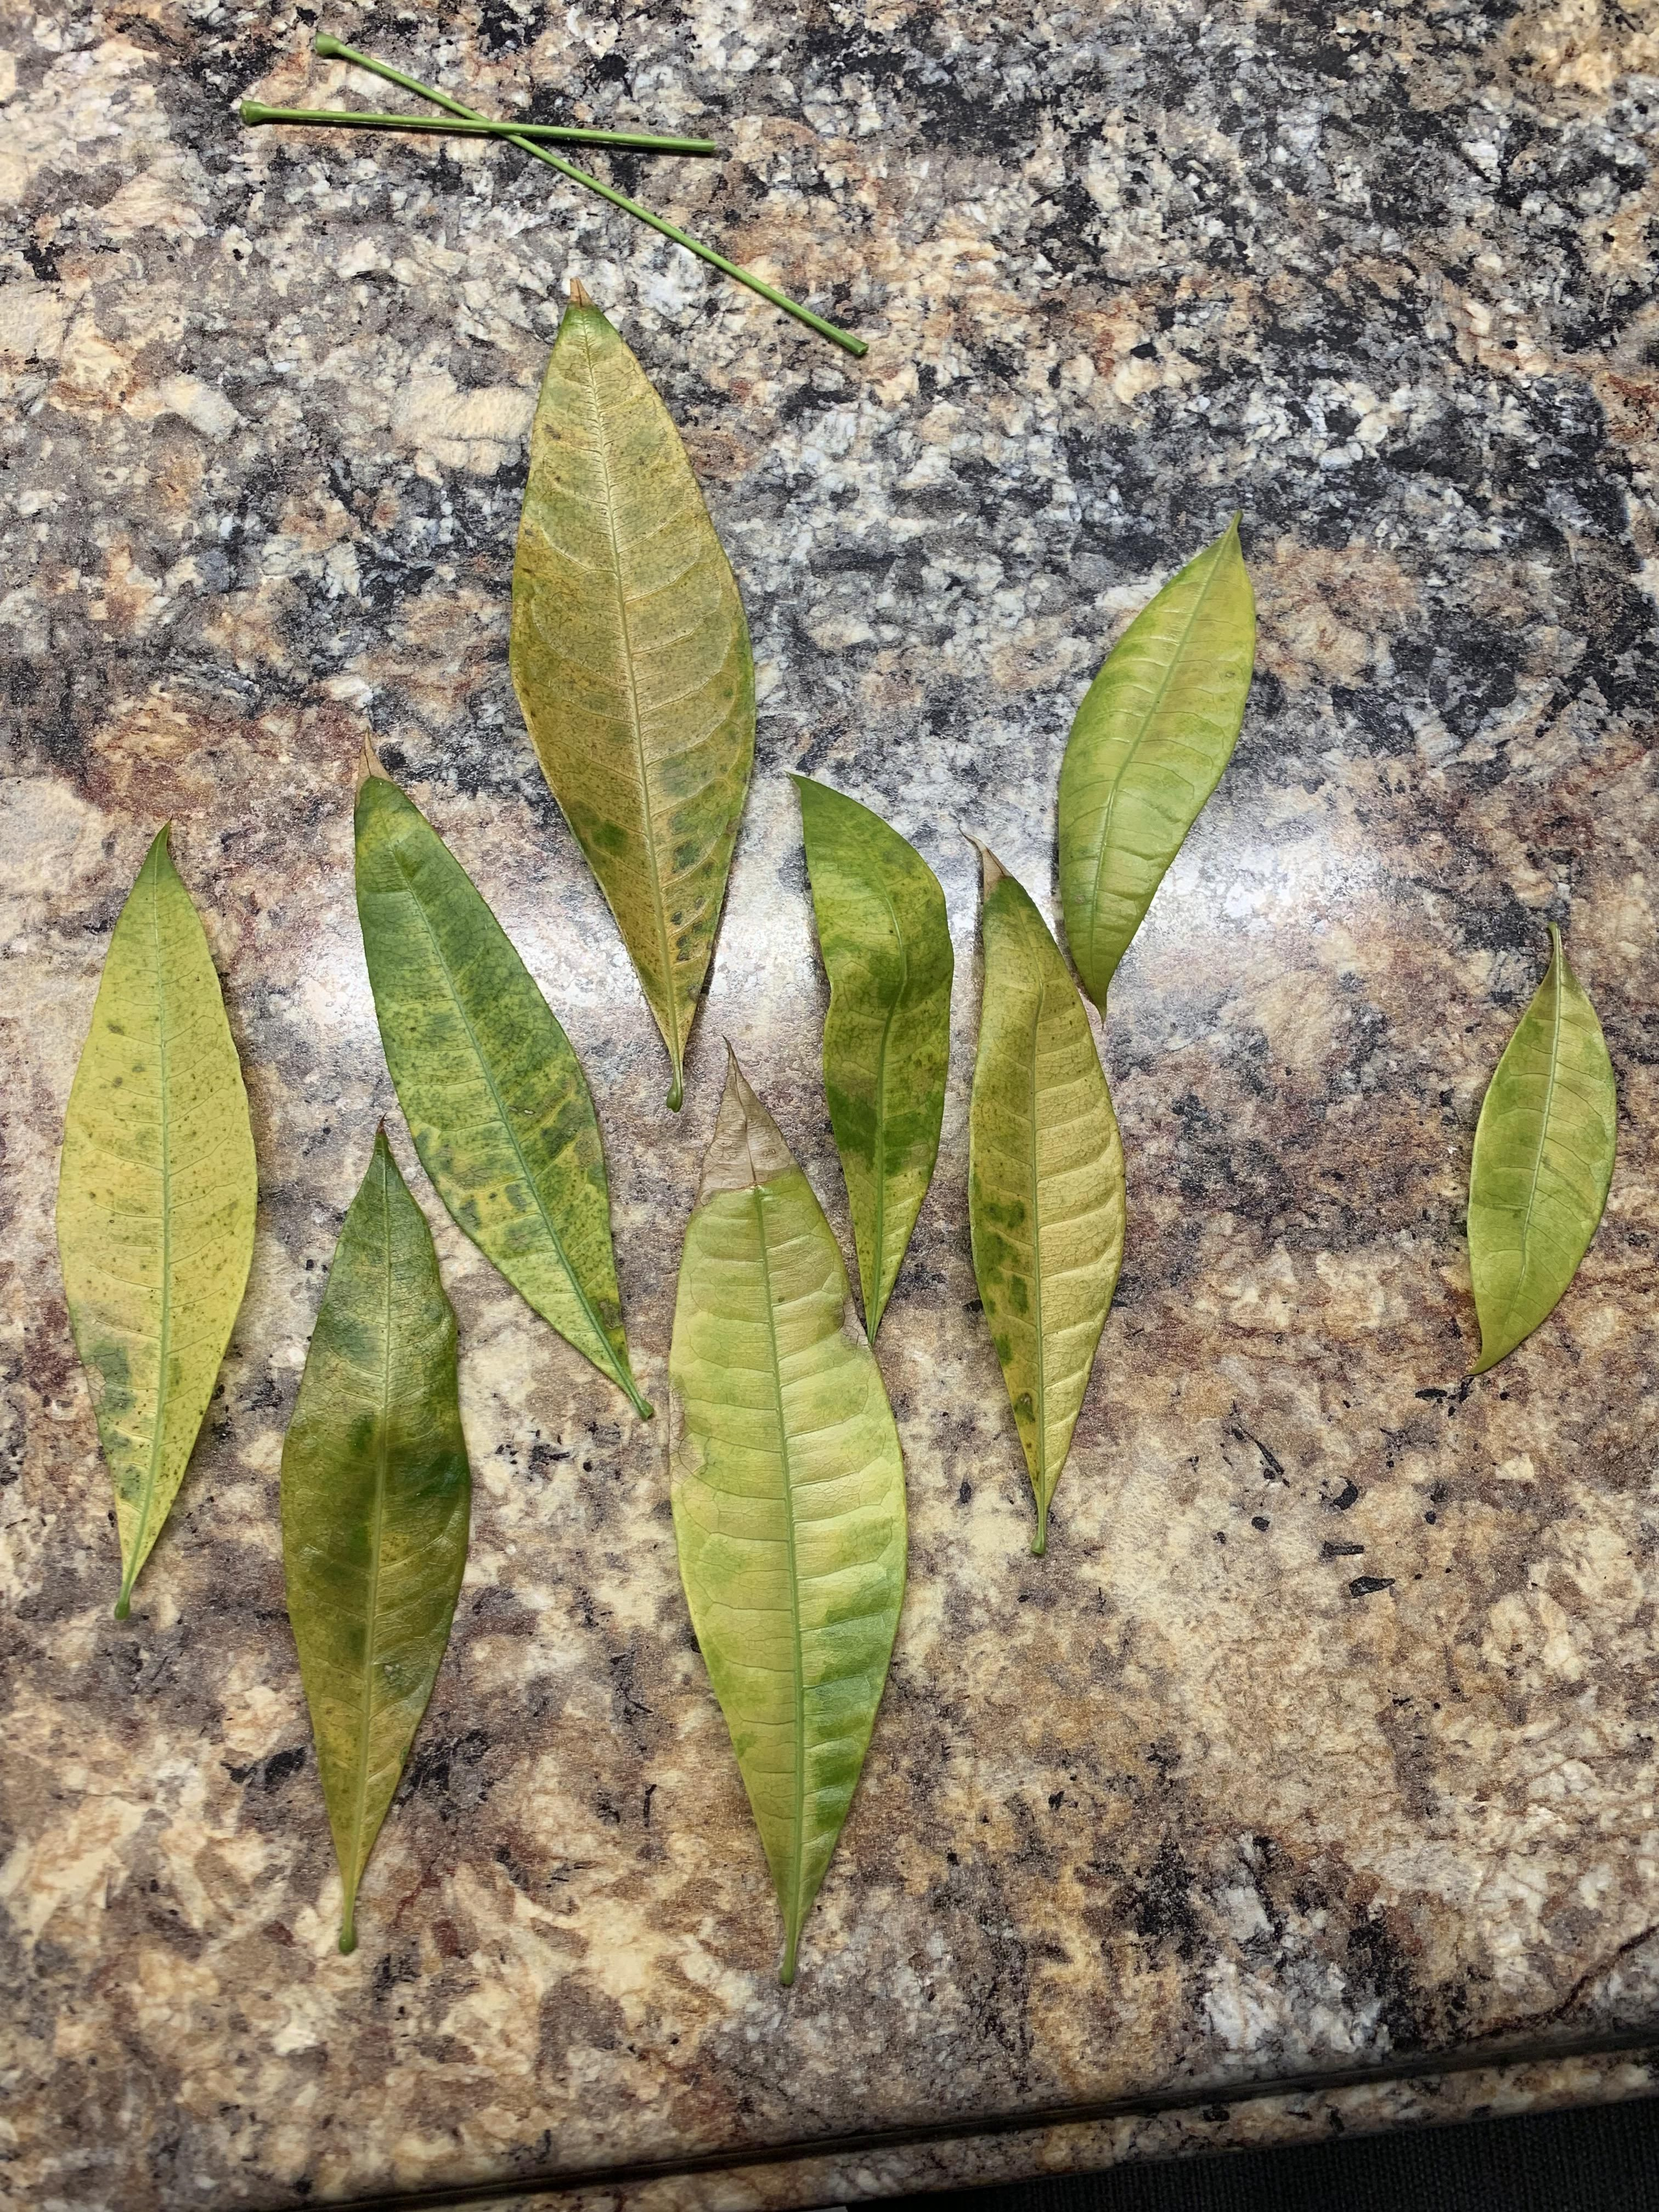 I Need Help I Don T Know What S Wrong With My Money Tree All It S Leaves Are Turning These Colors And Falling Off Ea Money Tree Plant Money Trees Plant Leaves